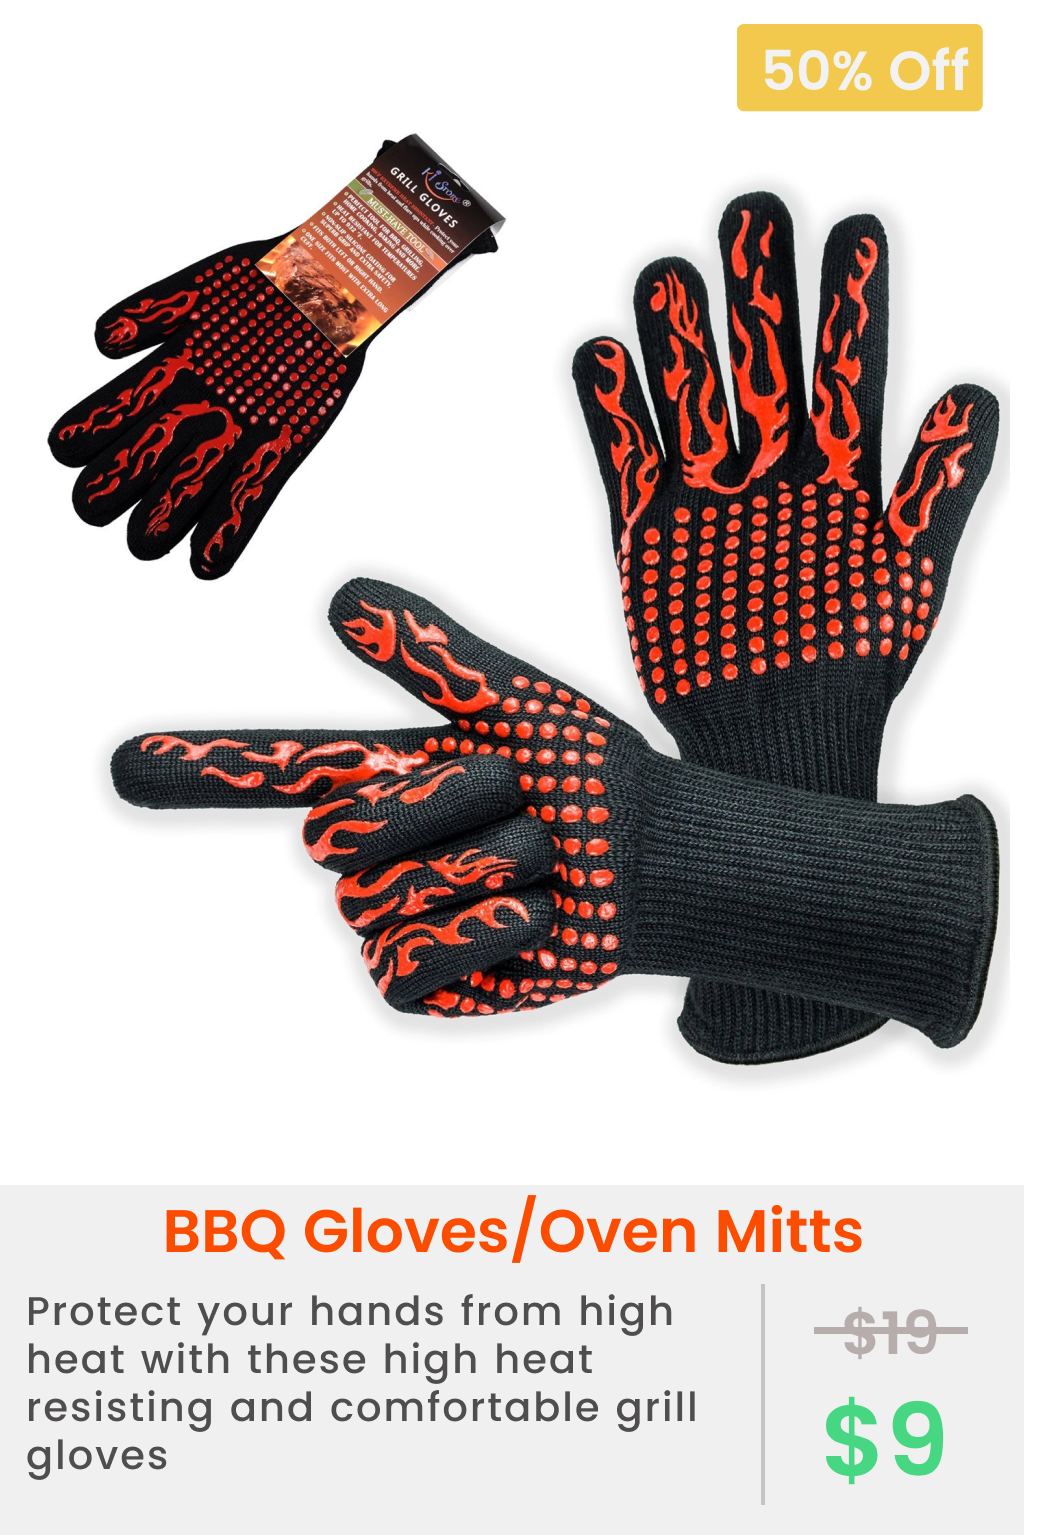 Ki Store Bbq Gloves Extreme Heat Resistant 932 F Grill Gloves Long